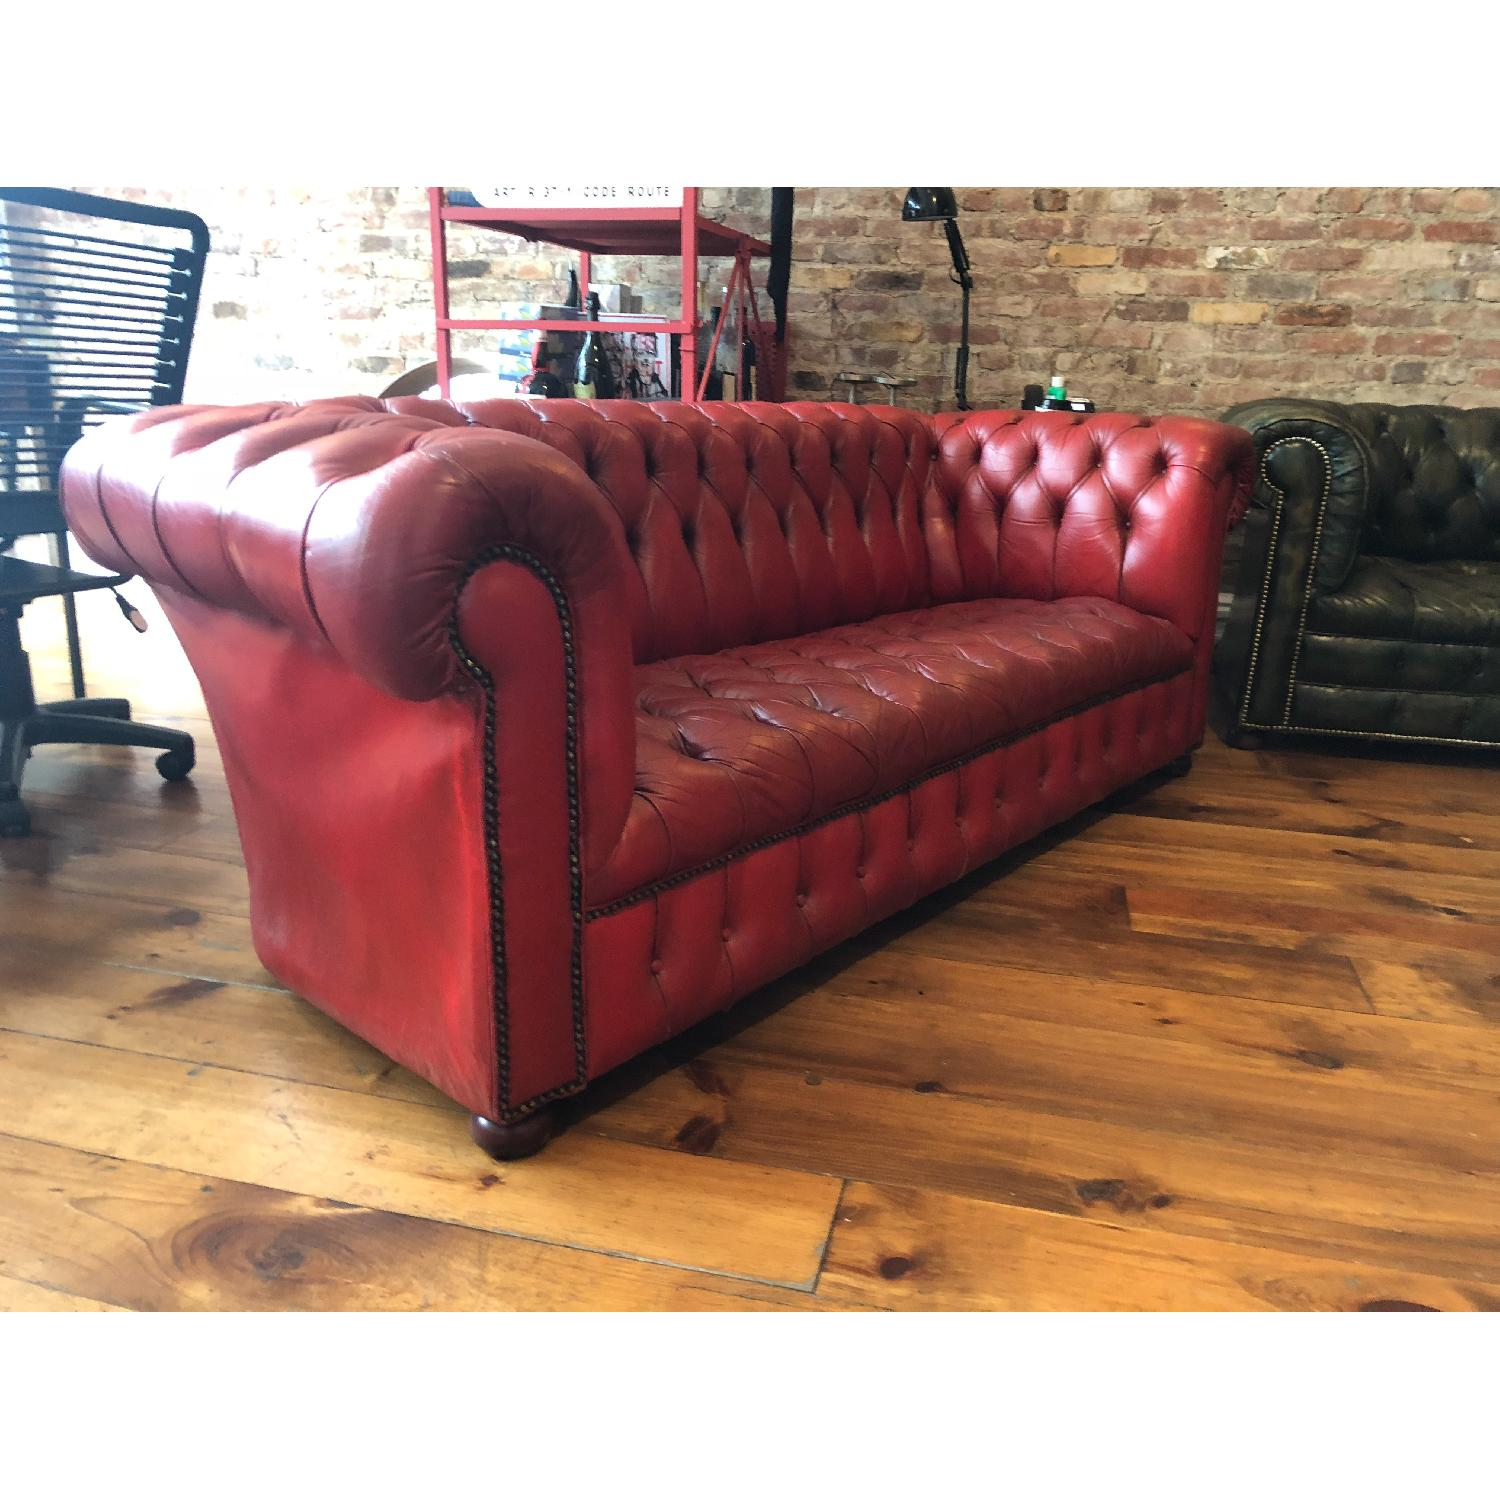 1950s Art Deco Chesterfield Tufted Red Leather Sofa - AptDeco